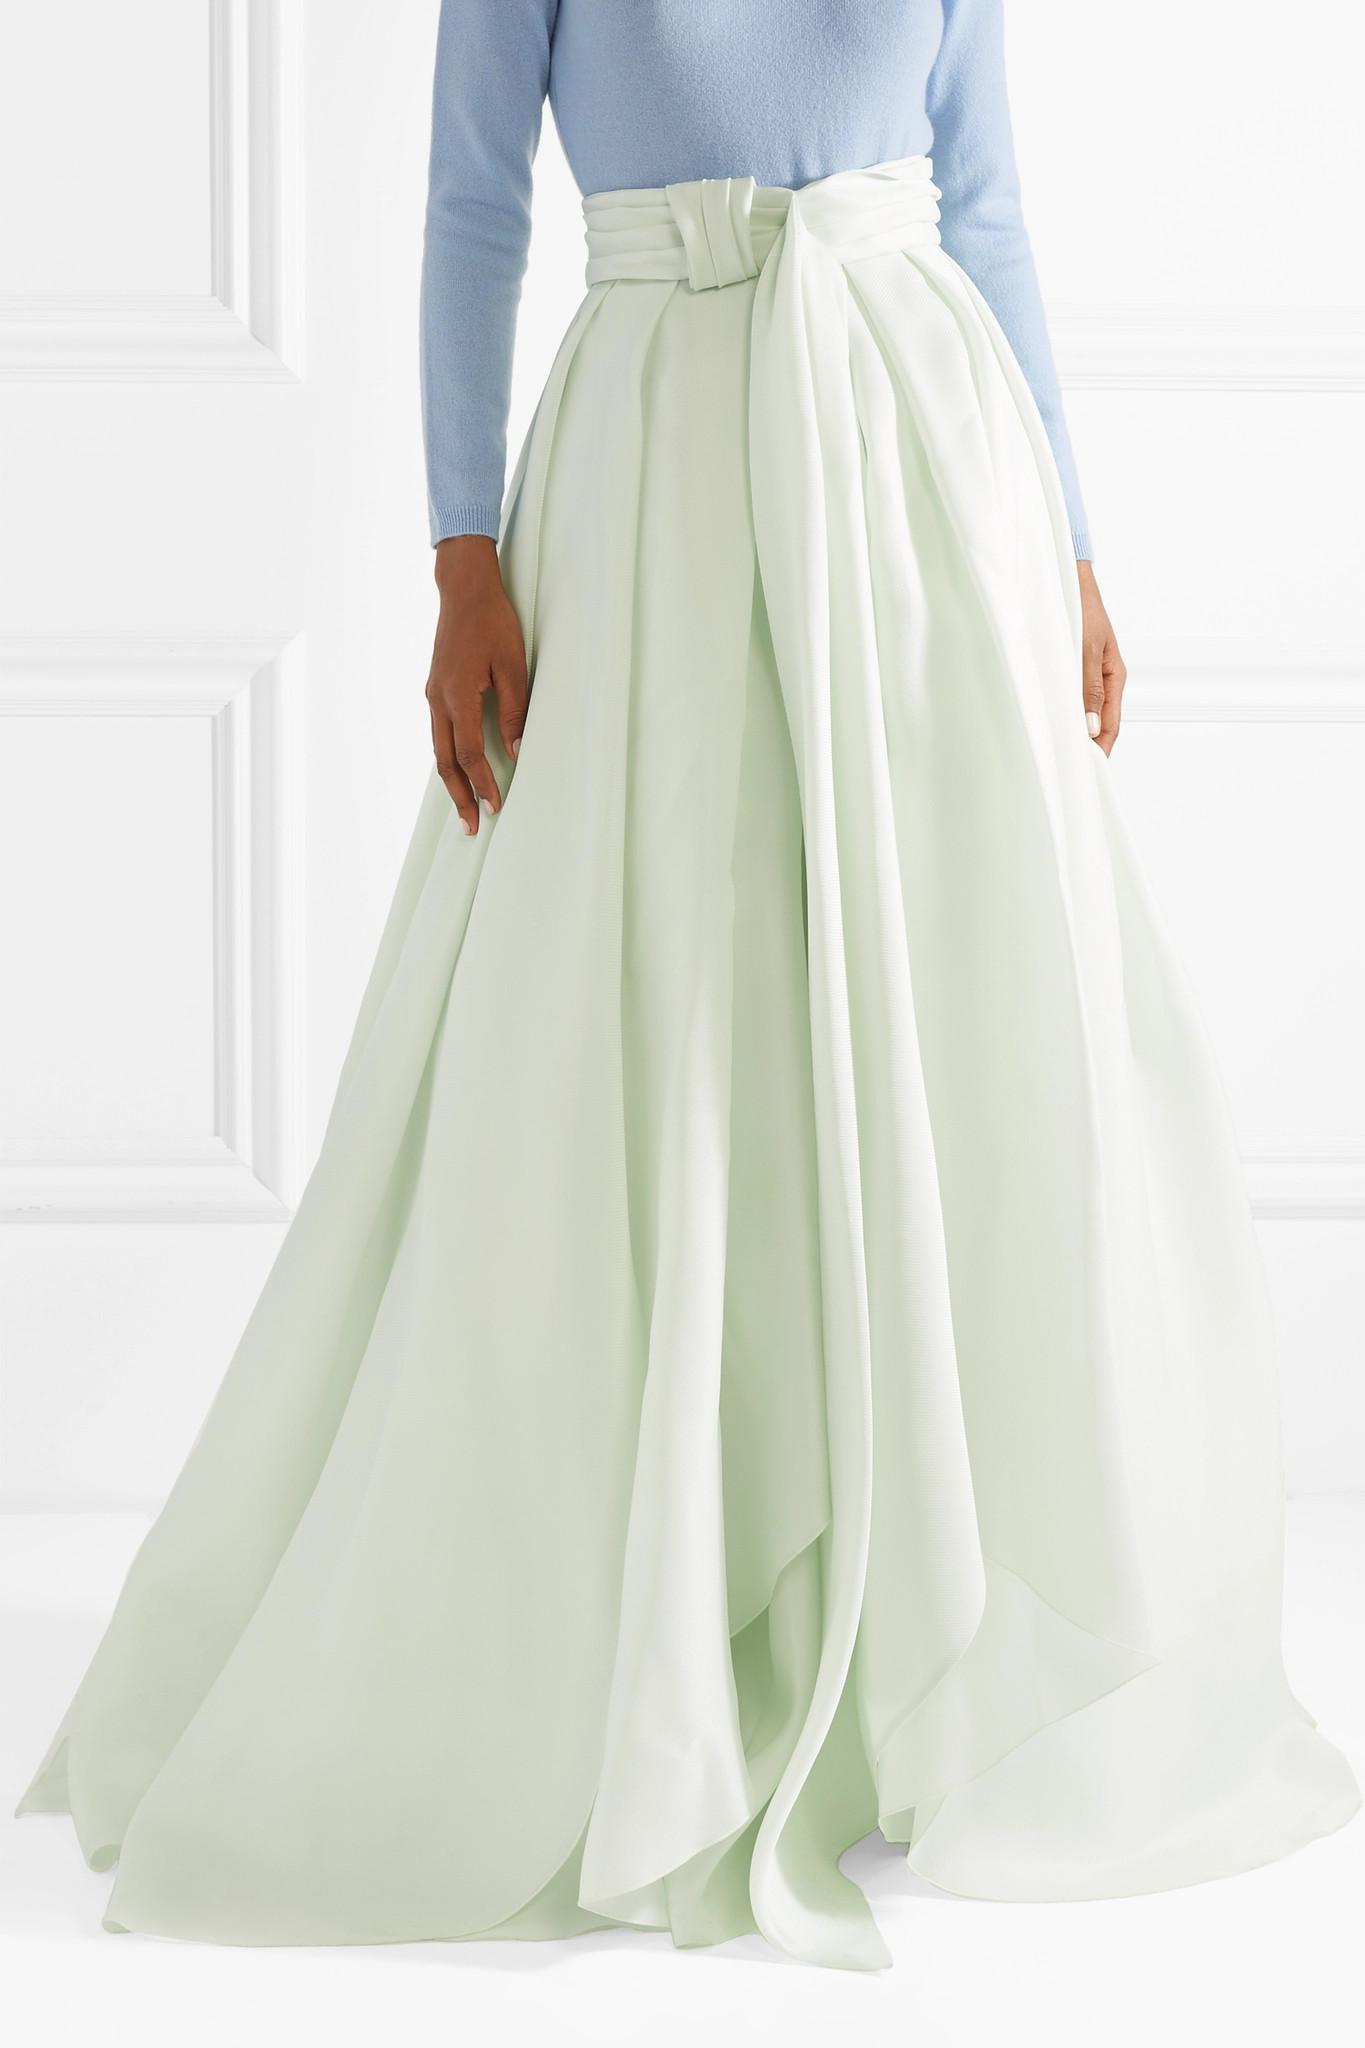 Knotted Silk-gazar Maxi Skirt - Mint Brandon Maxwell Discount Low Price Fee Shipping Clearance From China Pay With Paypal Online For Sale 2018 Buy Cheap 100% Authentic wDTKDLC8F